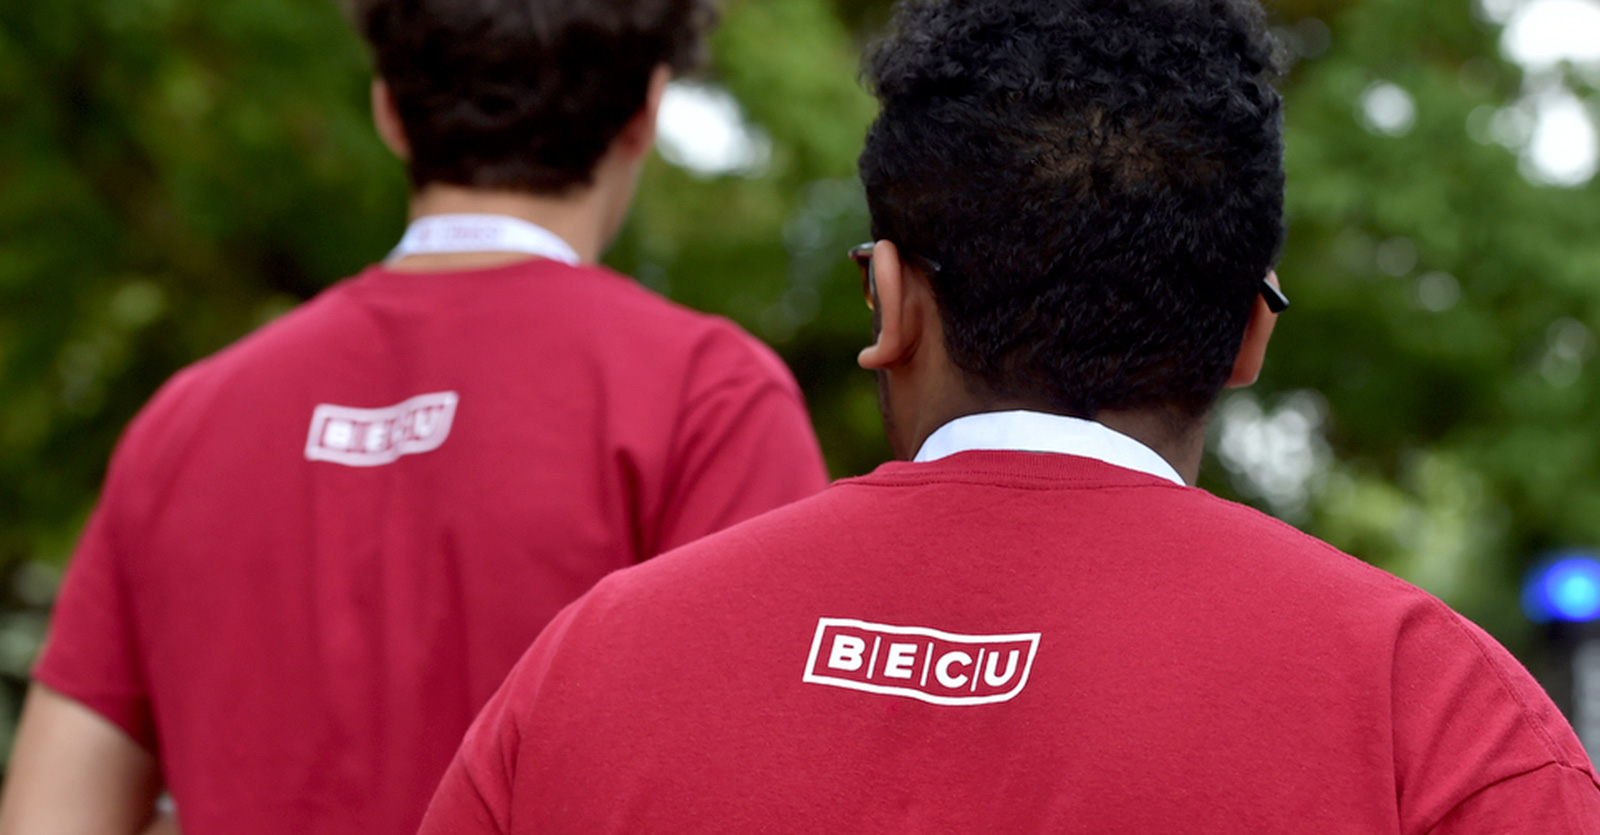 BECU logos on red shirts